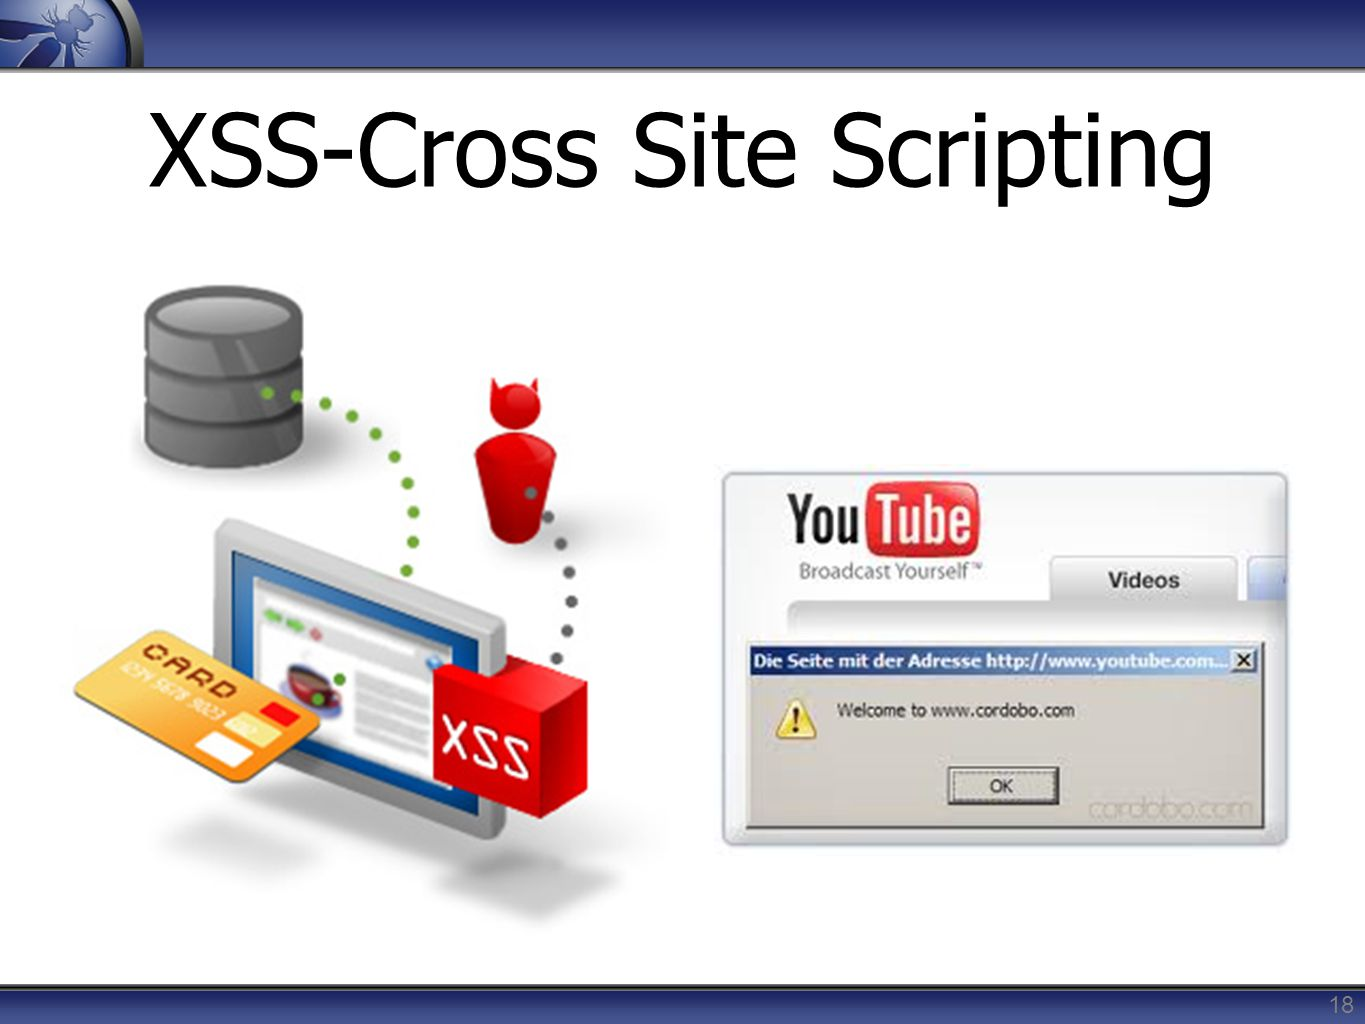 XSS-Cross Site Scripting